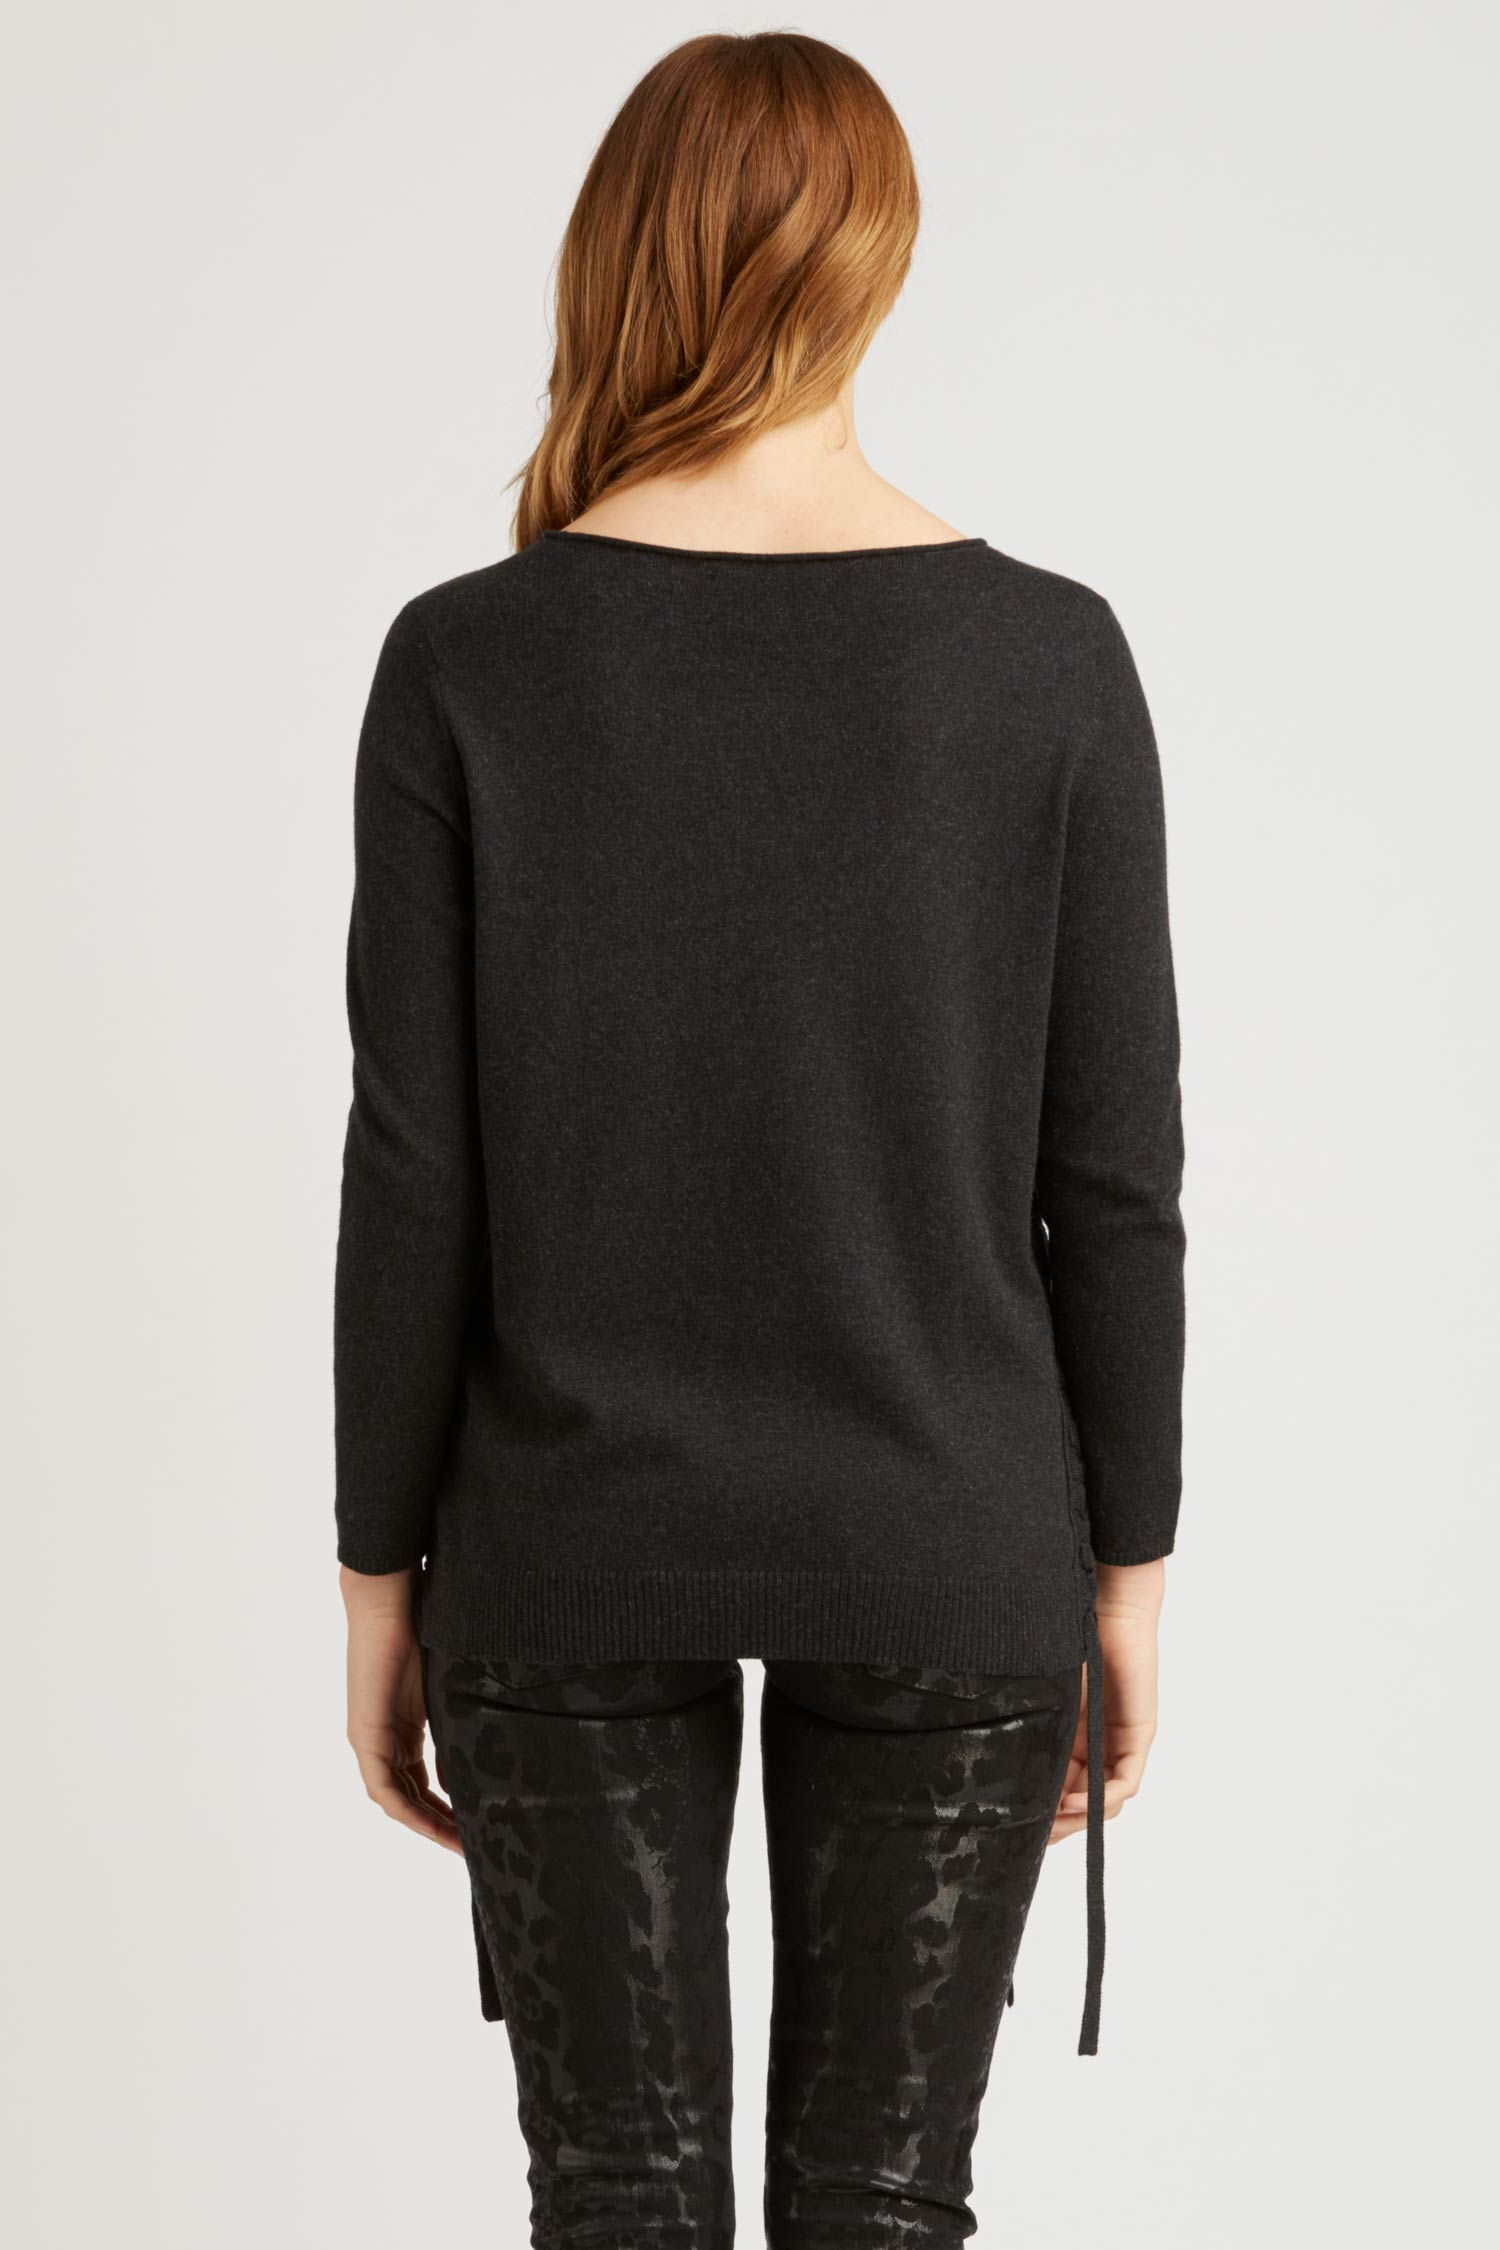 Womens Side Lace Up Pullover Sweater in Black | Fair Trade Fashion